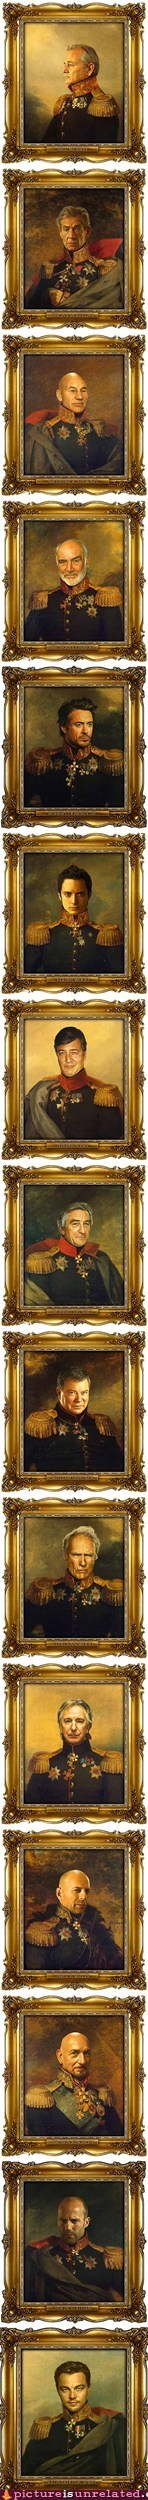 best of week celeb paintings russian generals wtf - 6214638848